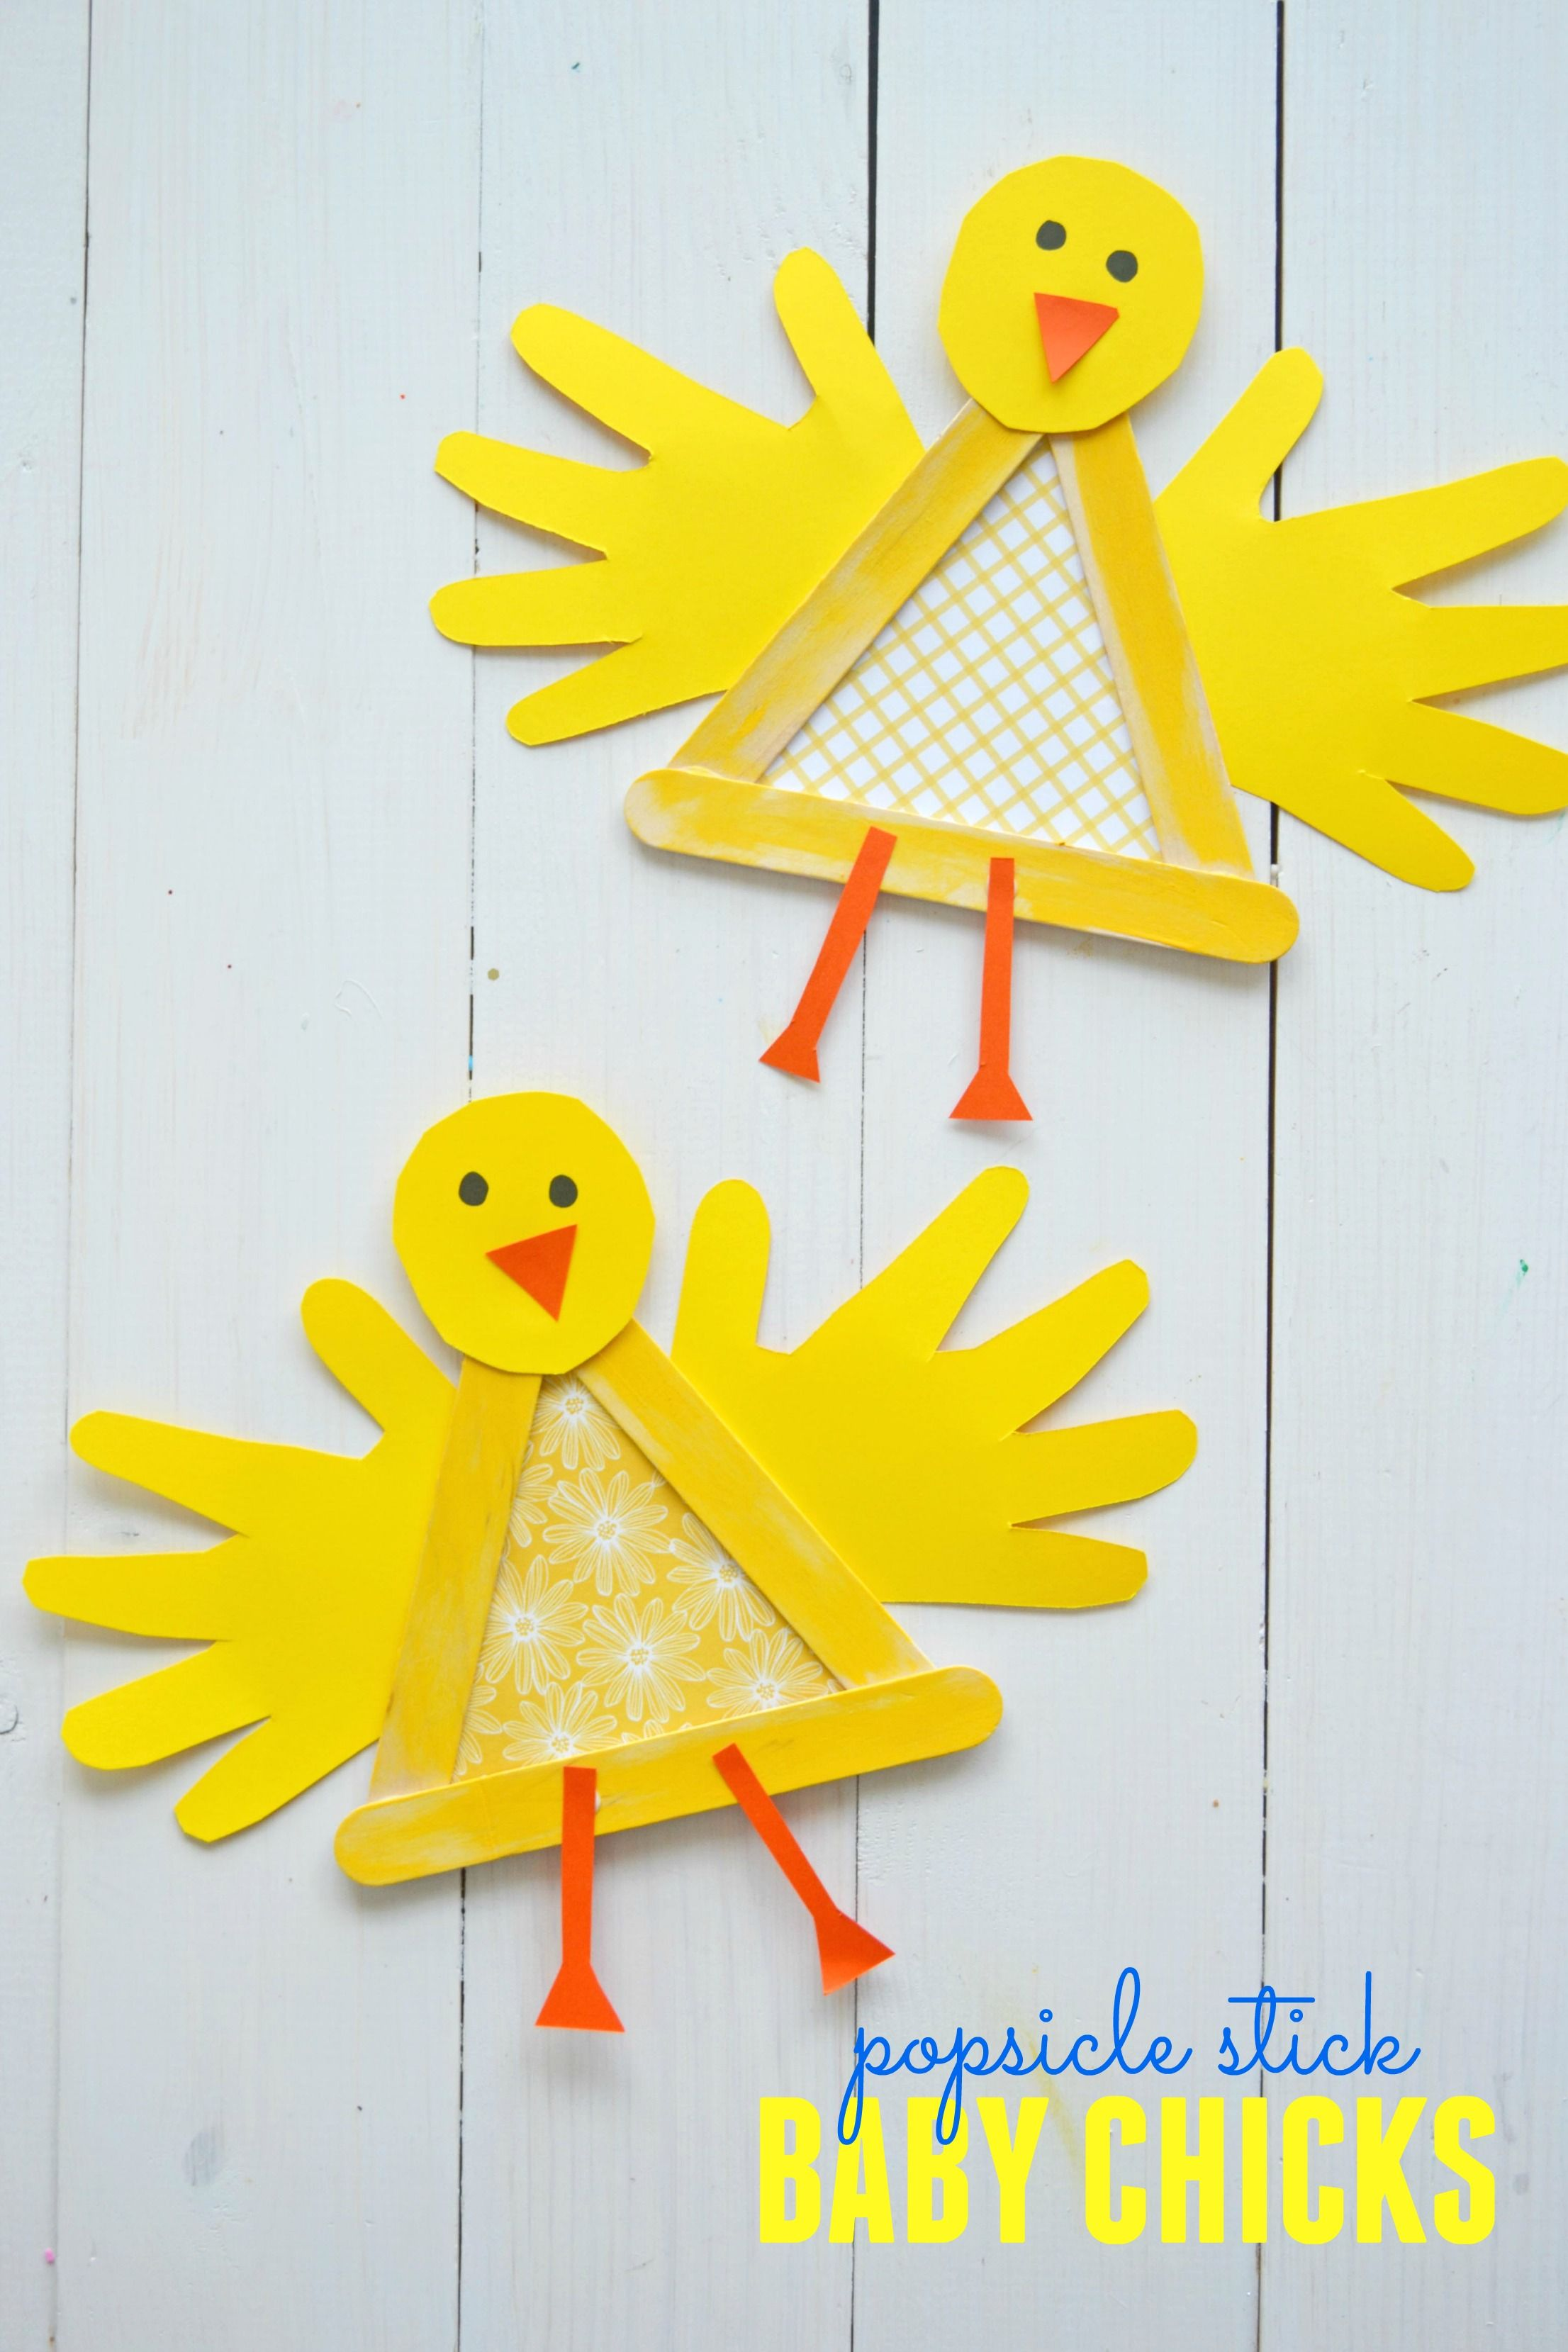 d5fb65d6f Crafty Popsicle Stick Baby Chick for Spring | ideas | Manualidades ...